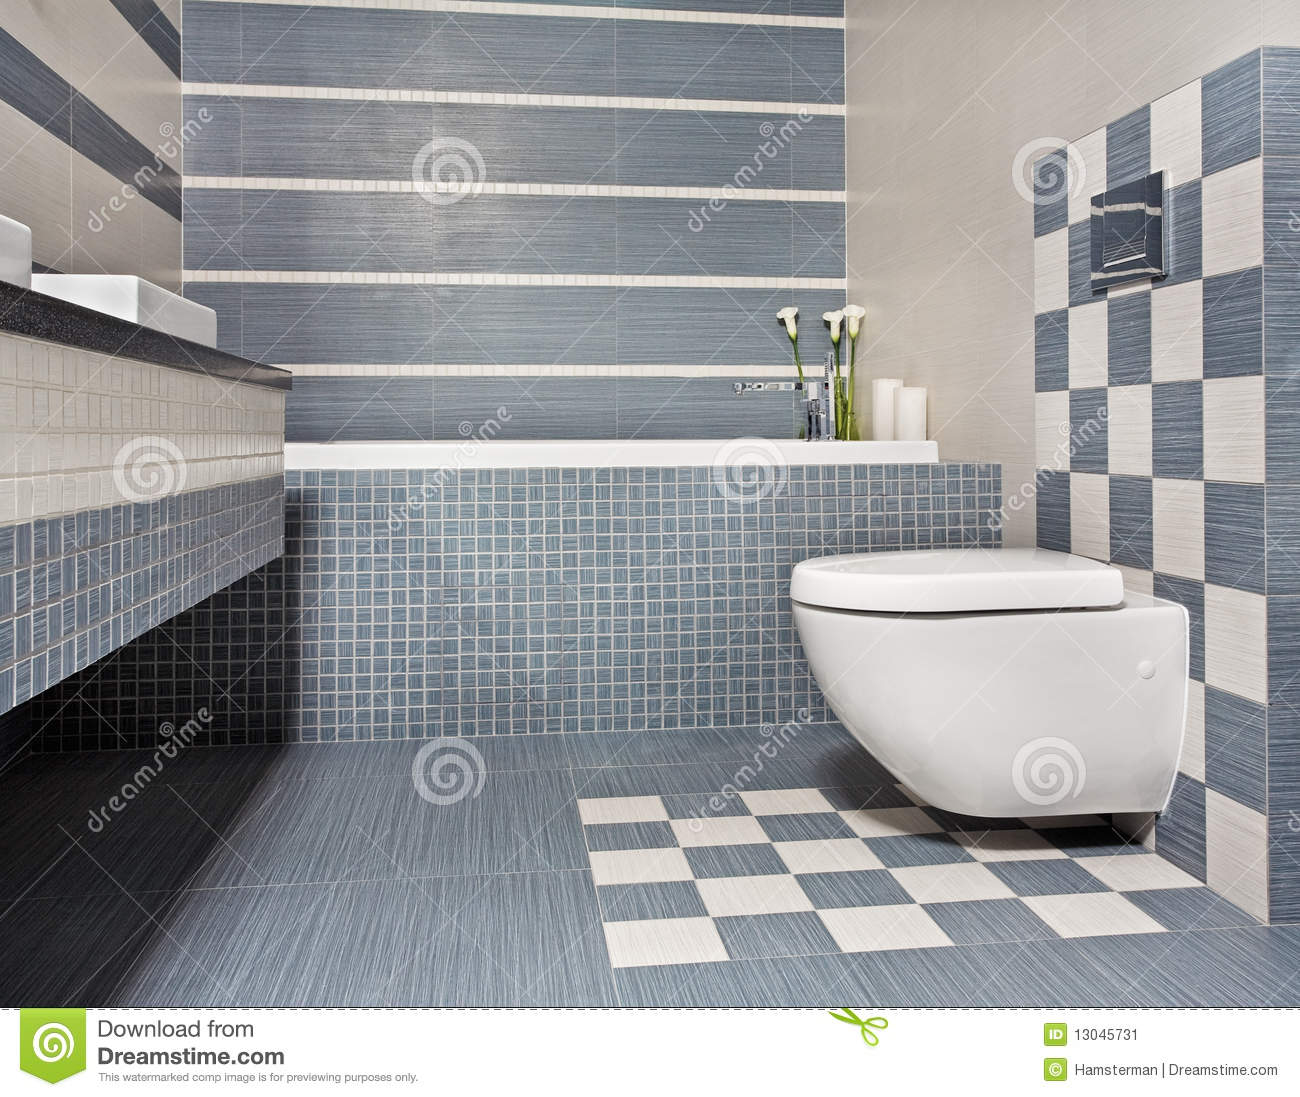 Baños Azules Modernos:Blue and Gray Bathroom